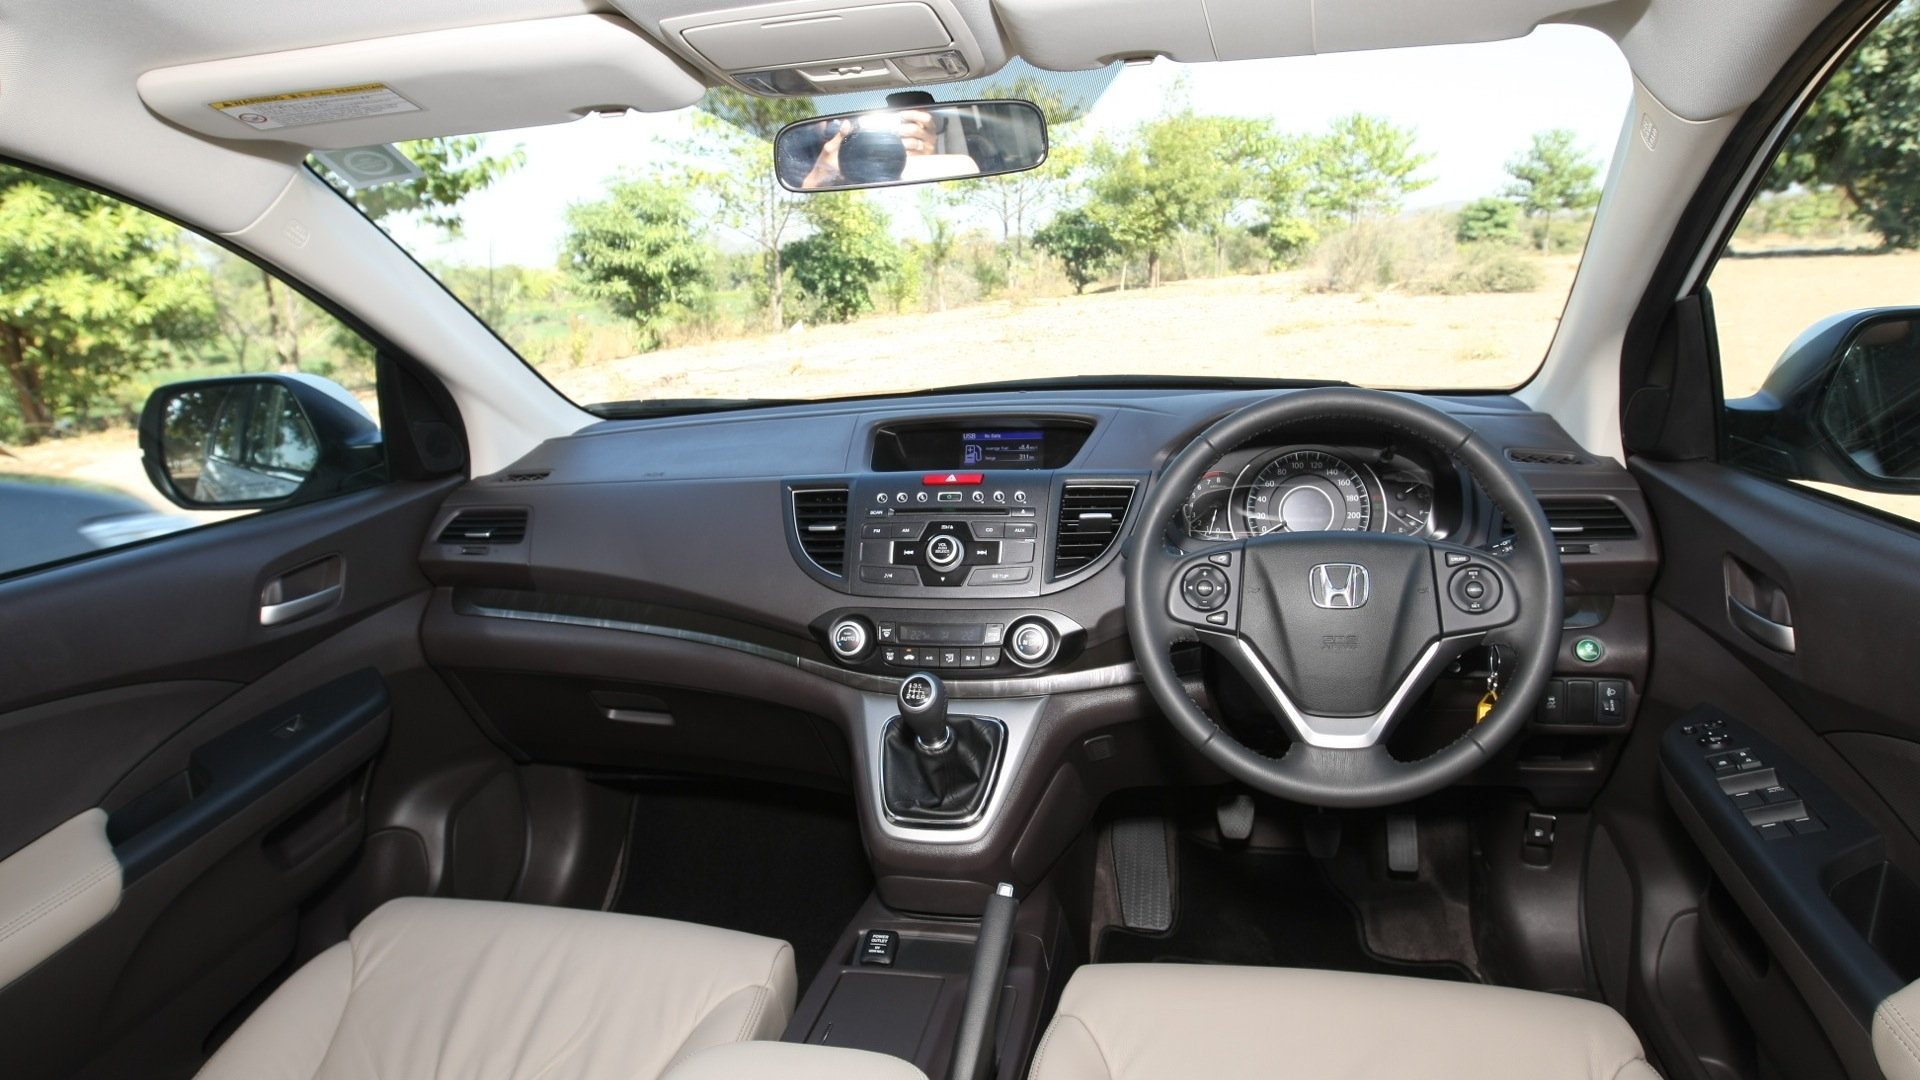 honda cr v 2018 price mileage reviews specification gallery overdrive. Black Bedroom Furniture Sets. Home Design Ideas